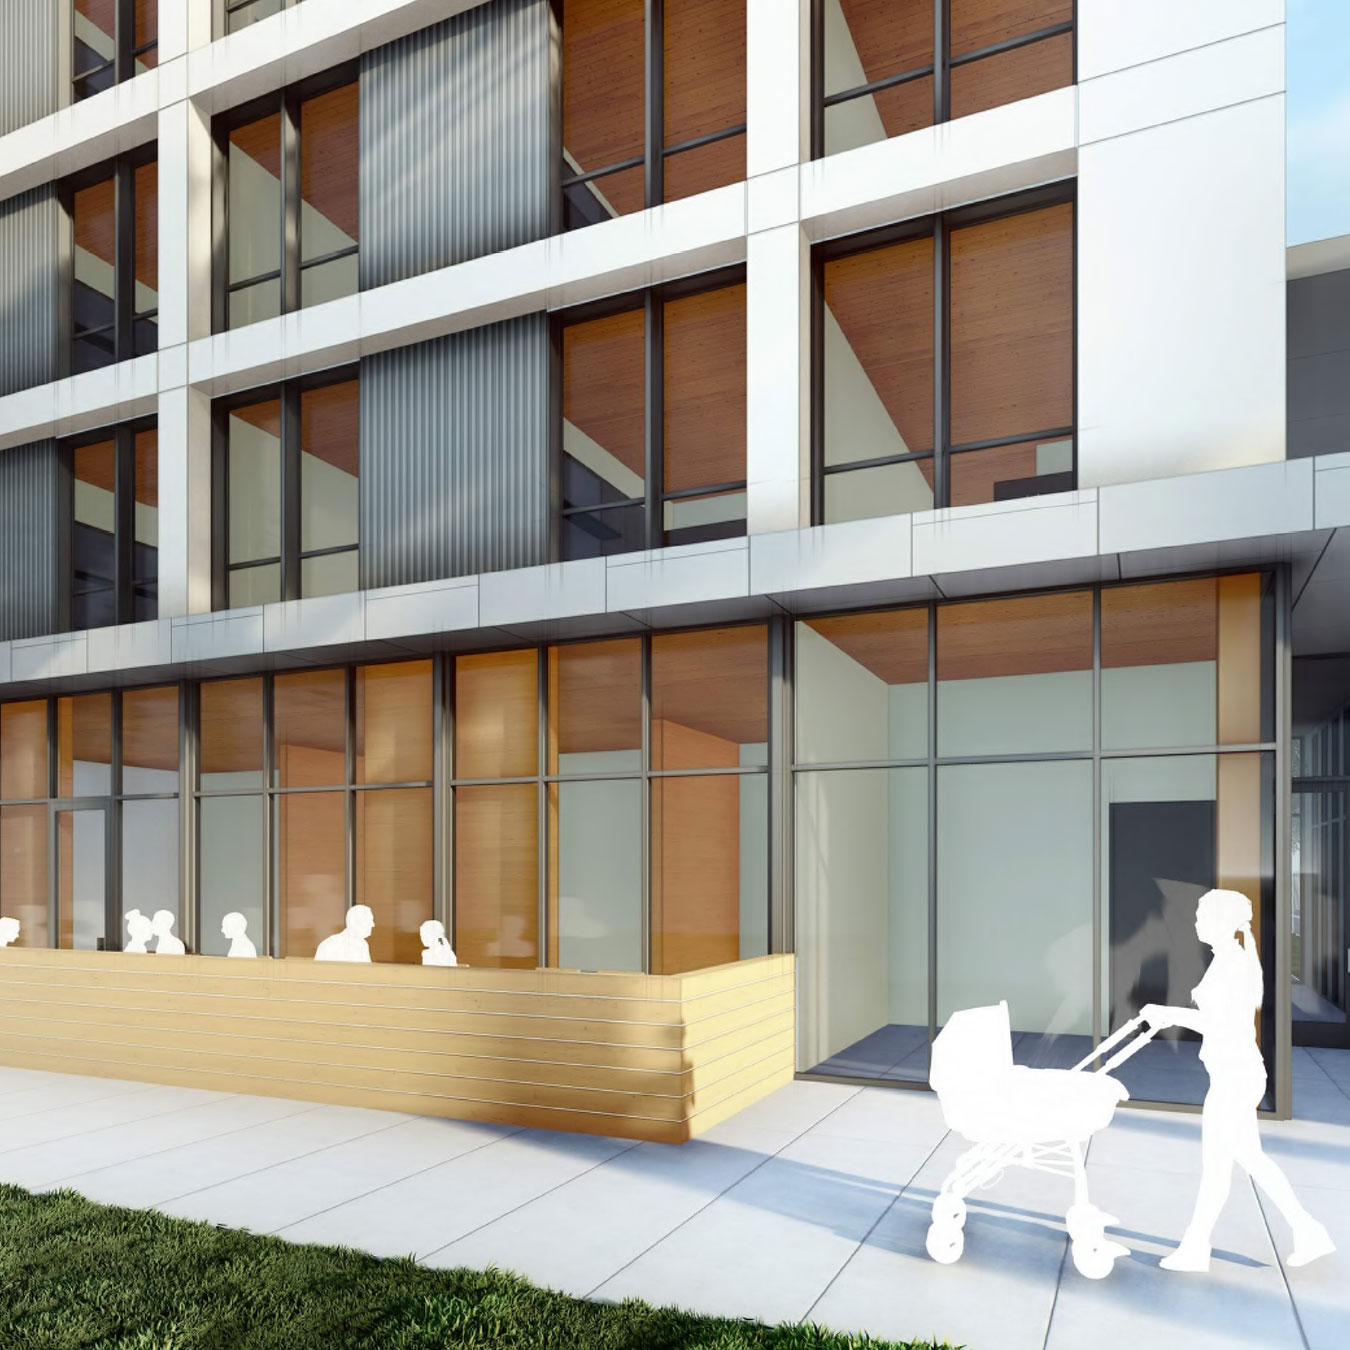 Courtyard Apartments Affordable Housing with Mass Timber in Sacramento California with Retail and Cafe